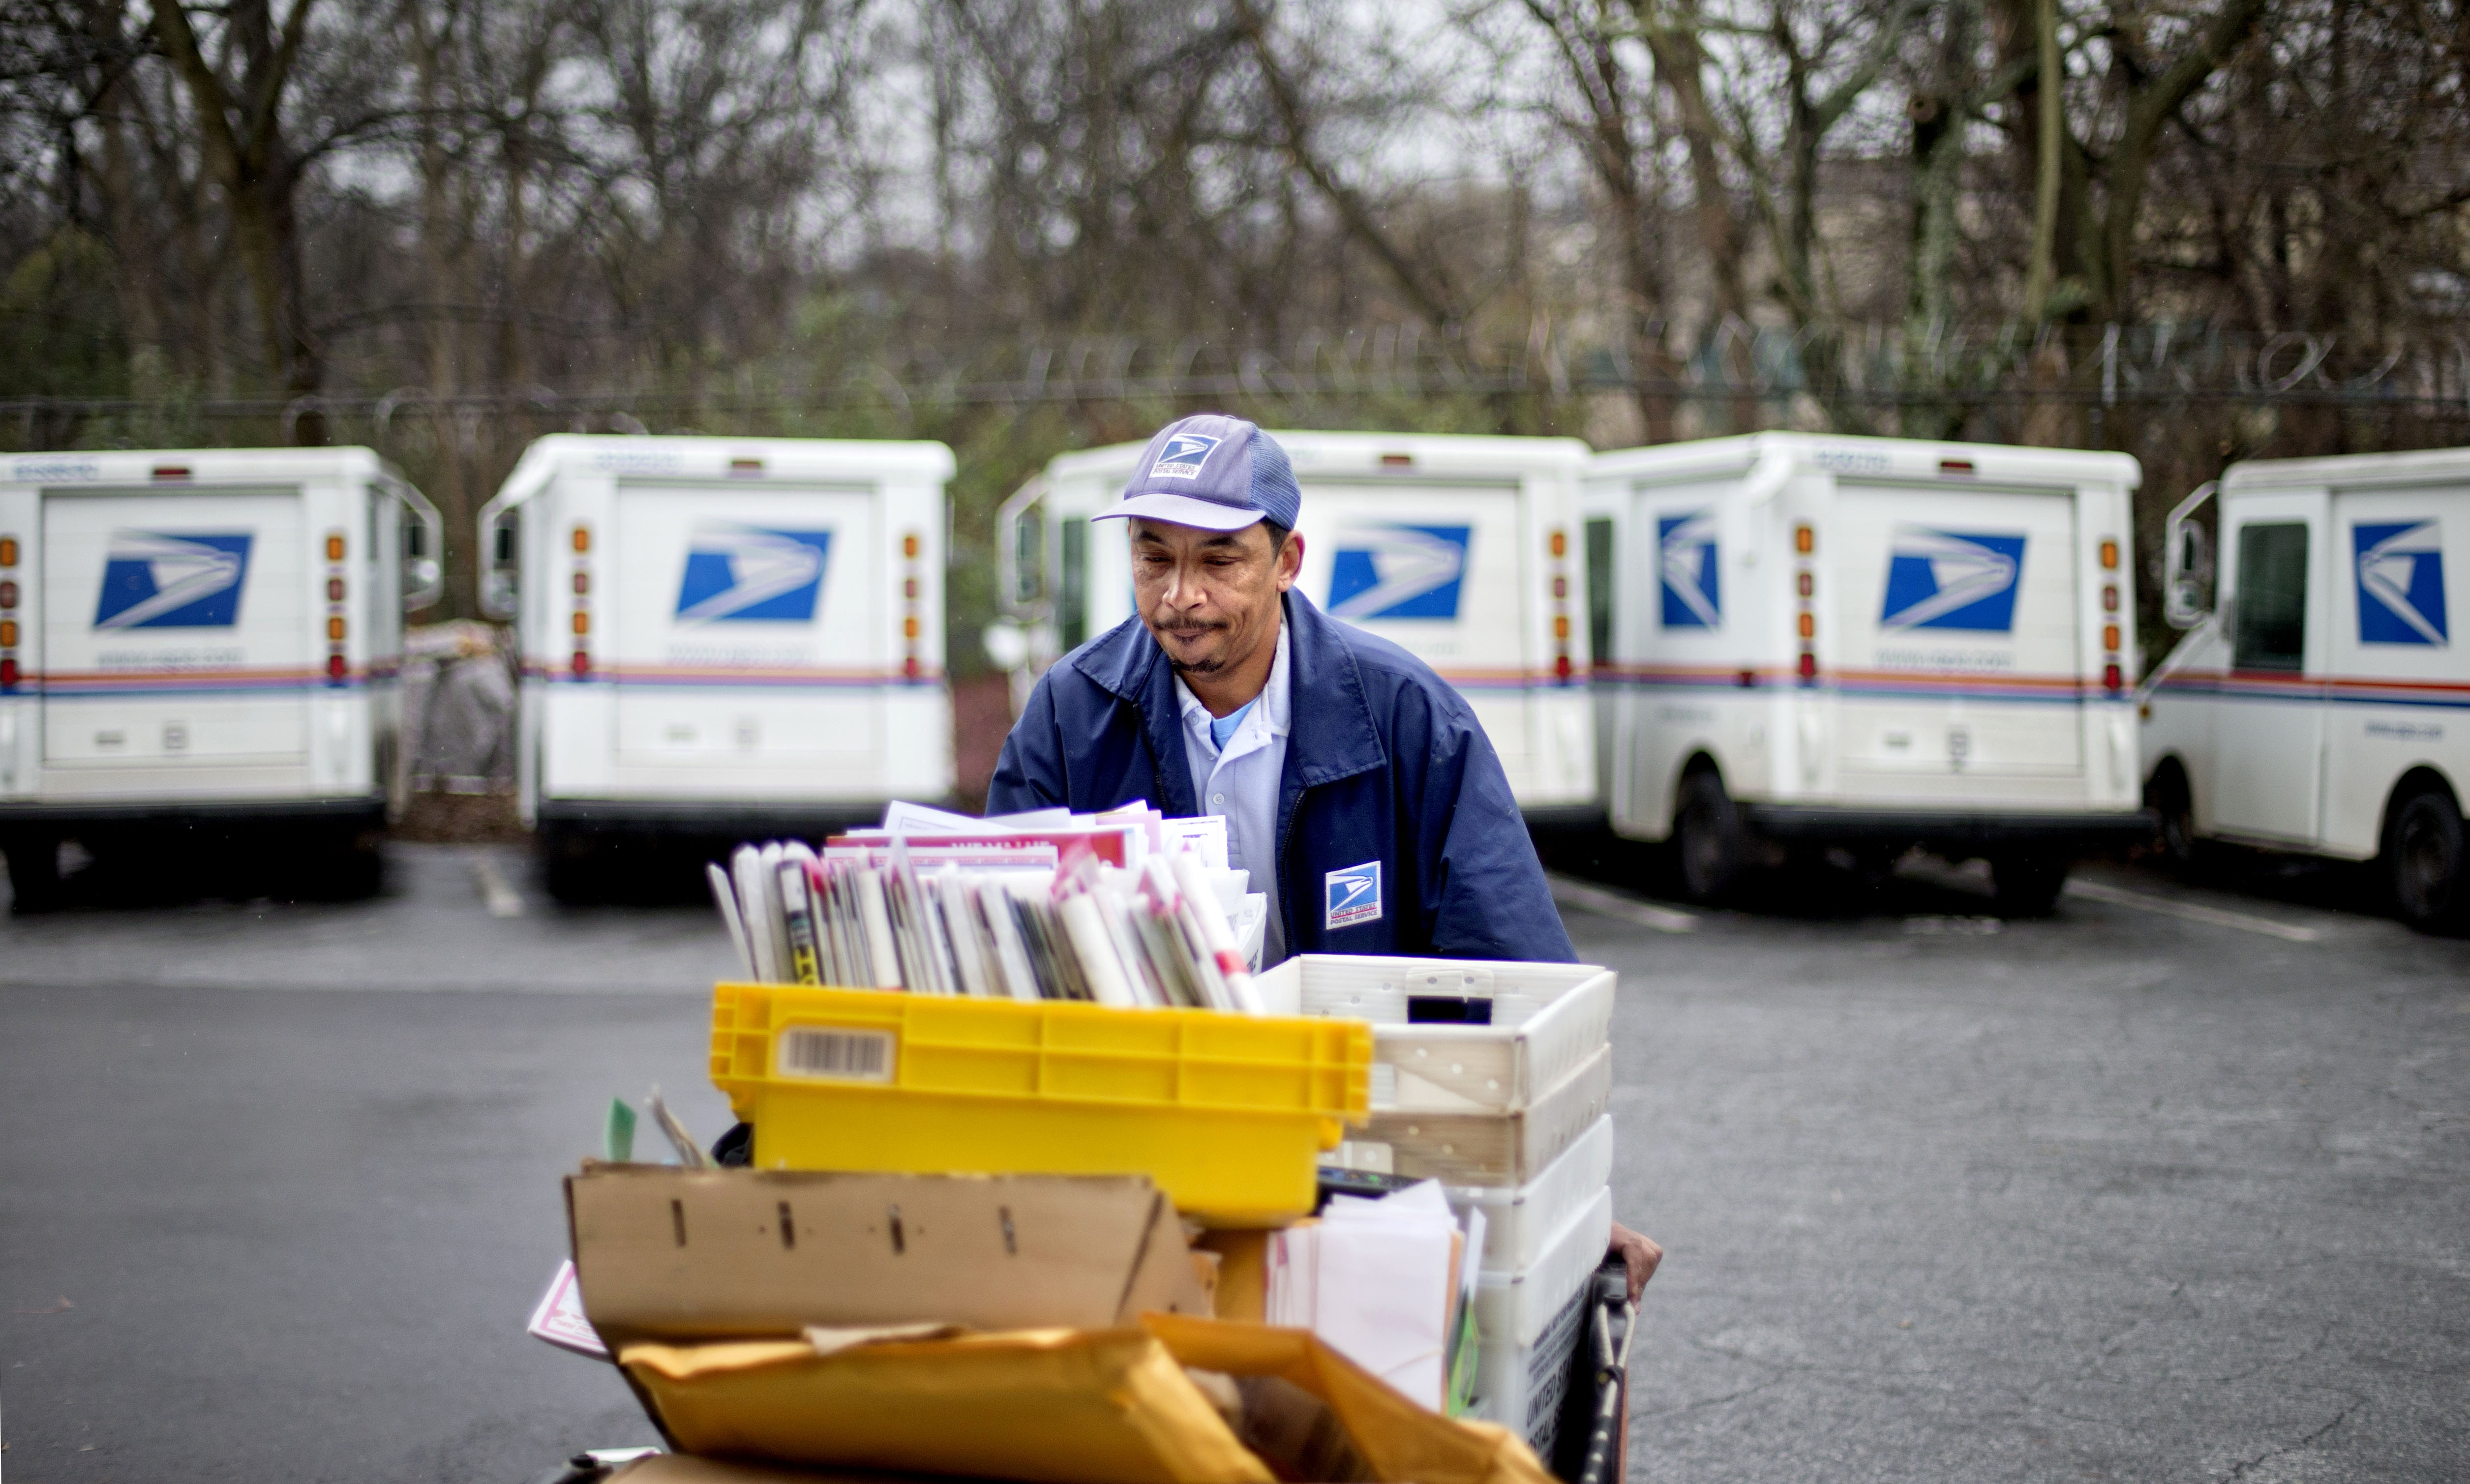 FILE - In this Feb. 7, 2013 file photo, U.S. Postal Service letter carrier Michael McDonald gathers mail to load into his truck before making his delivery run in the East Atlanta neighborhood, in Atlanta. The U.S. Postal Service says it will delay plans to cut Saturday mail delivery because Congress isn't allowing the change. The Postal Service said in February that it planned to cut back in August to five-day-a-week deliveries for everything except packages, as a way to hold down losses. (AP Photo/David Goldman)